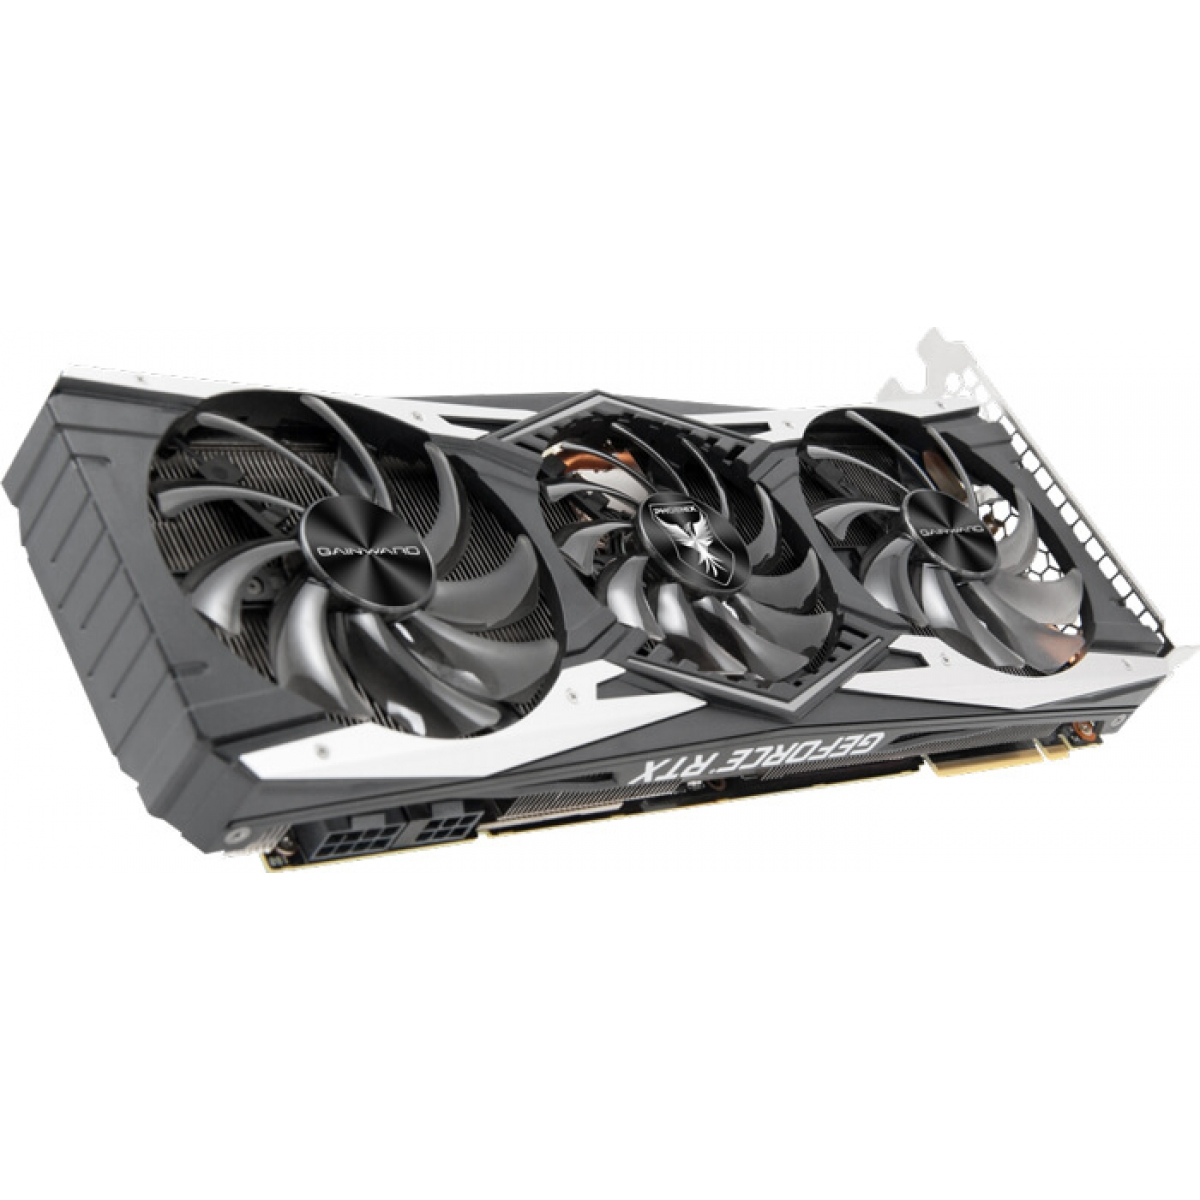 Placa De Vídeo Gainward Geforce RTX 2080, 8GB GDDR6, 256Bit